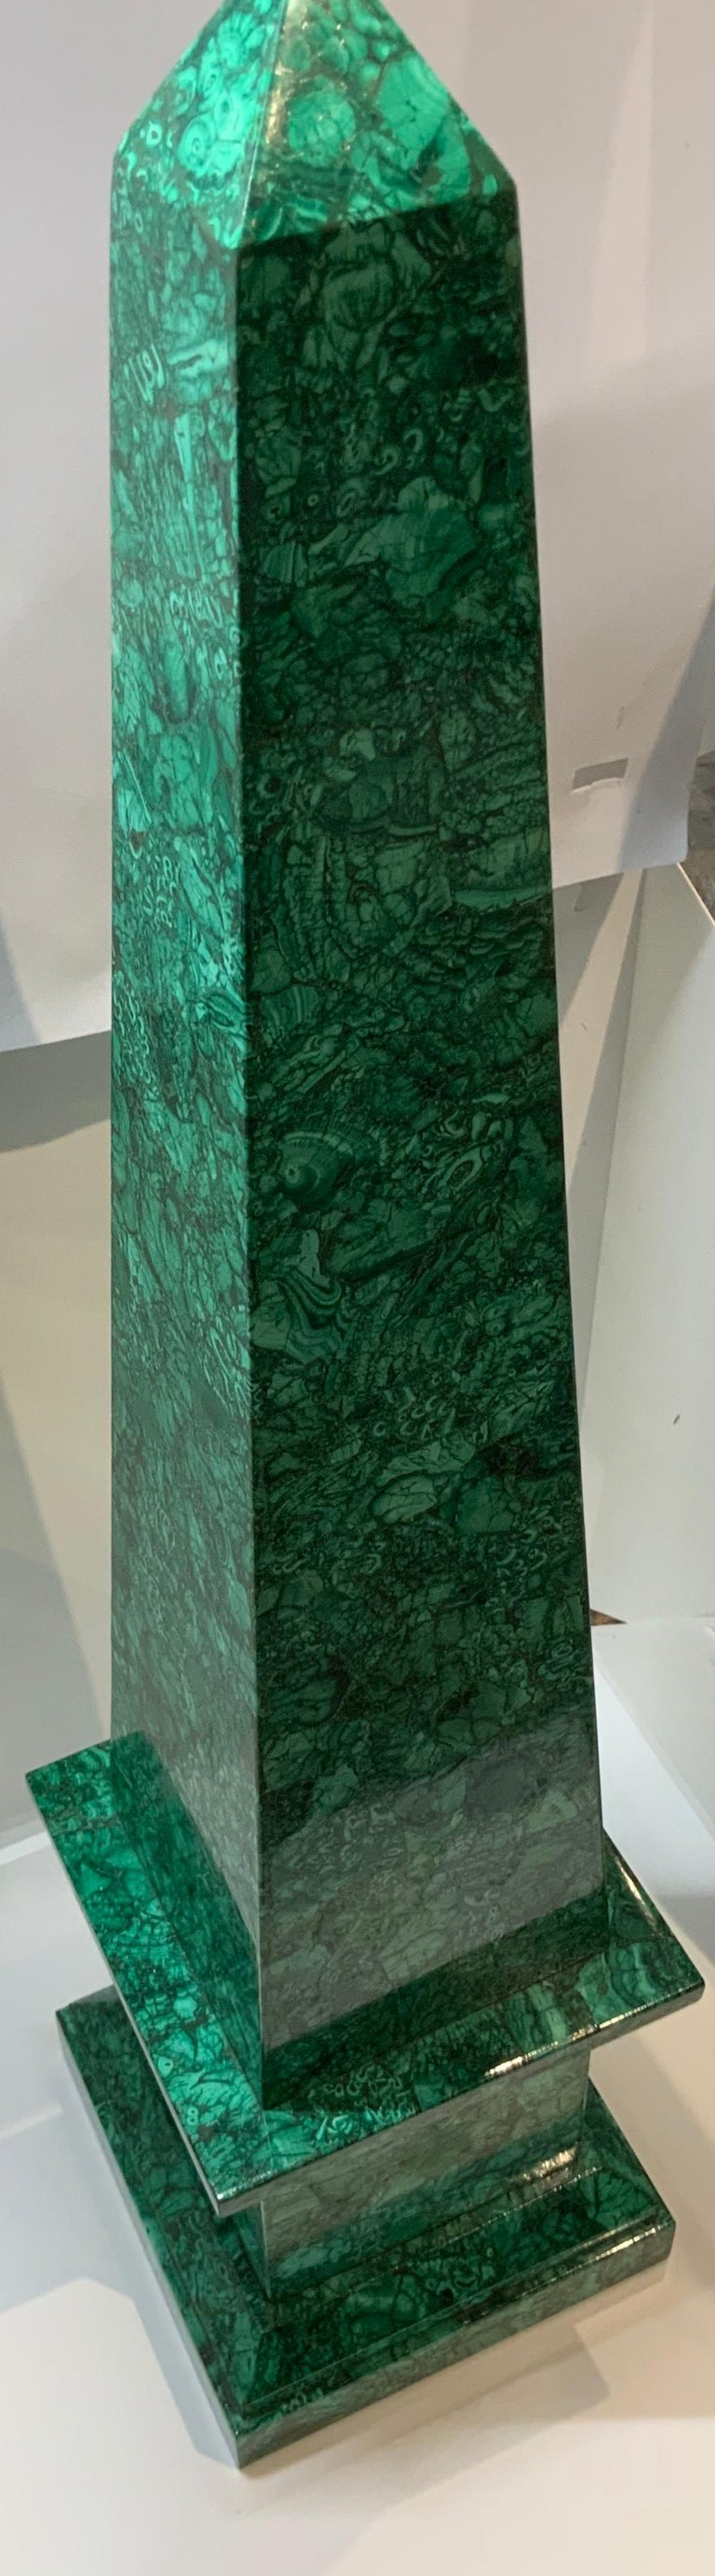 Hand-Crafted Neoclassical Style Malachite Obelisk For Sale